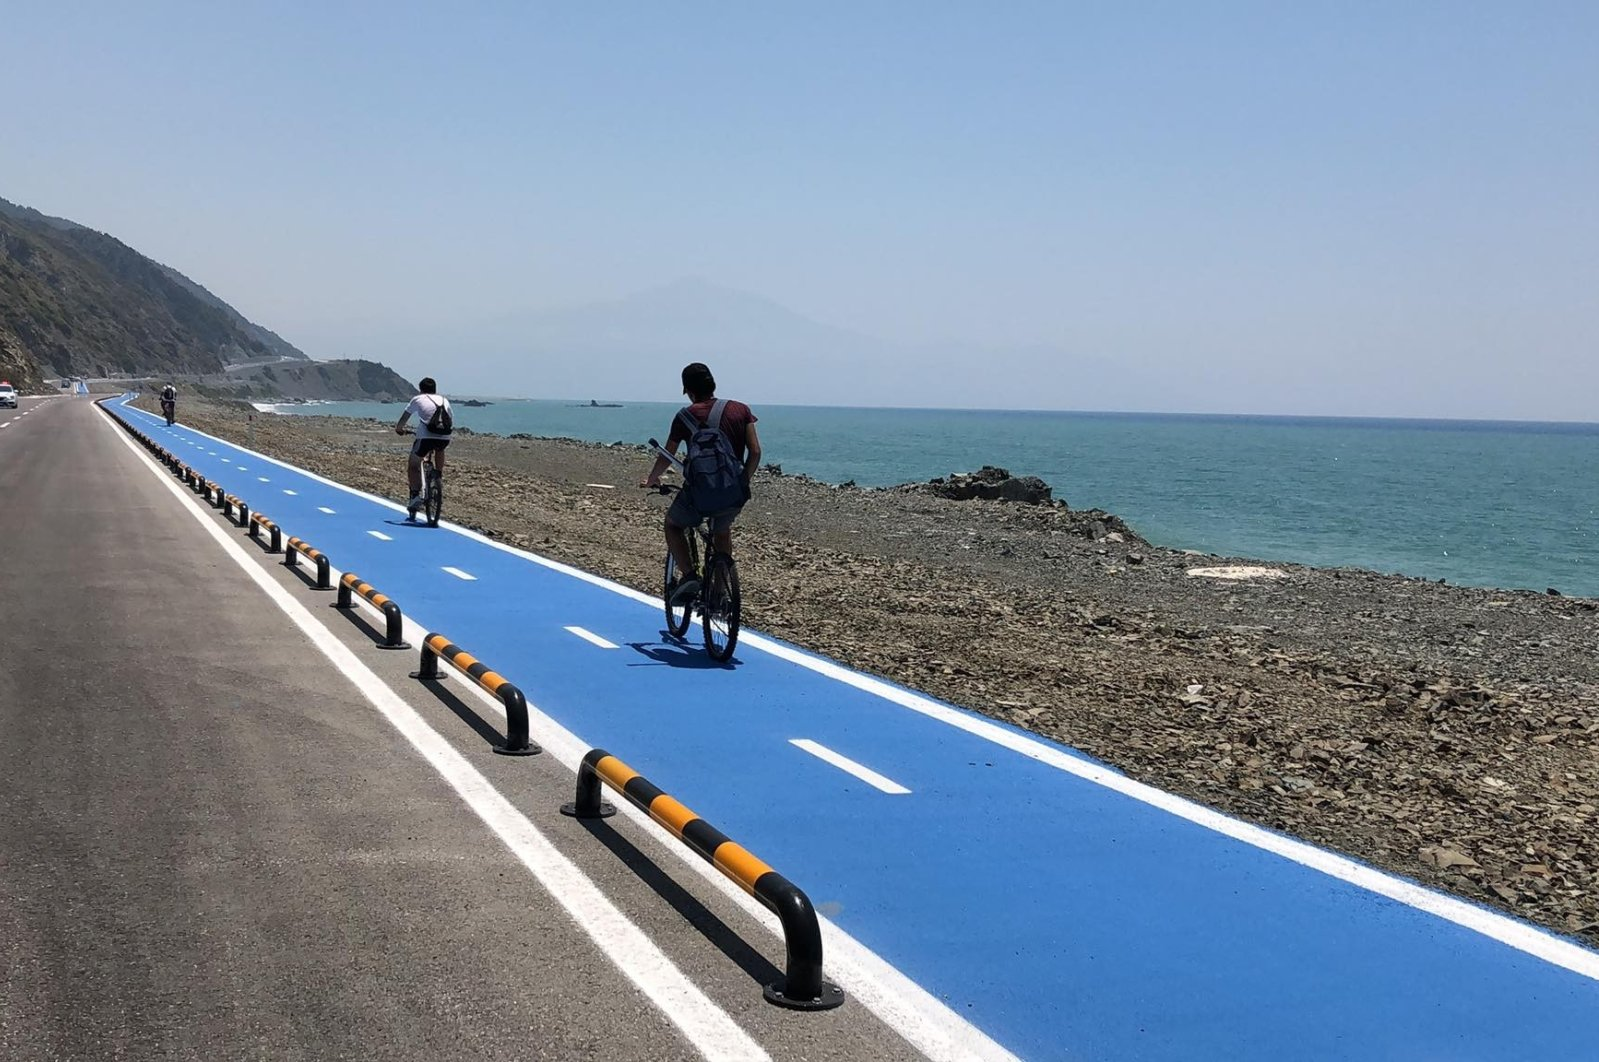 Cyclists ride on the new 25-kilometer bicycle lane, in Hatay province, southern Turkey, July 27, 2020. (IHA Photo)